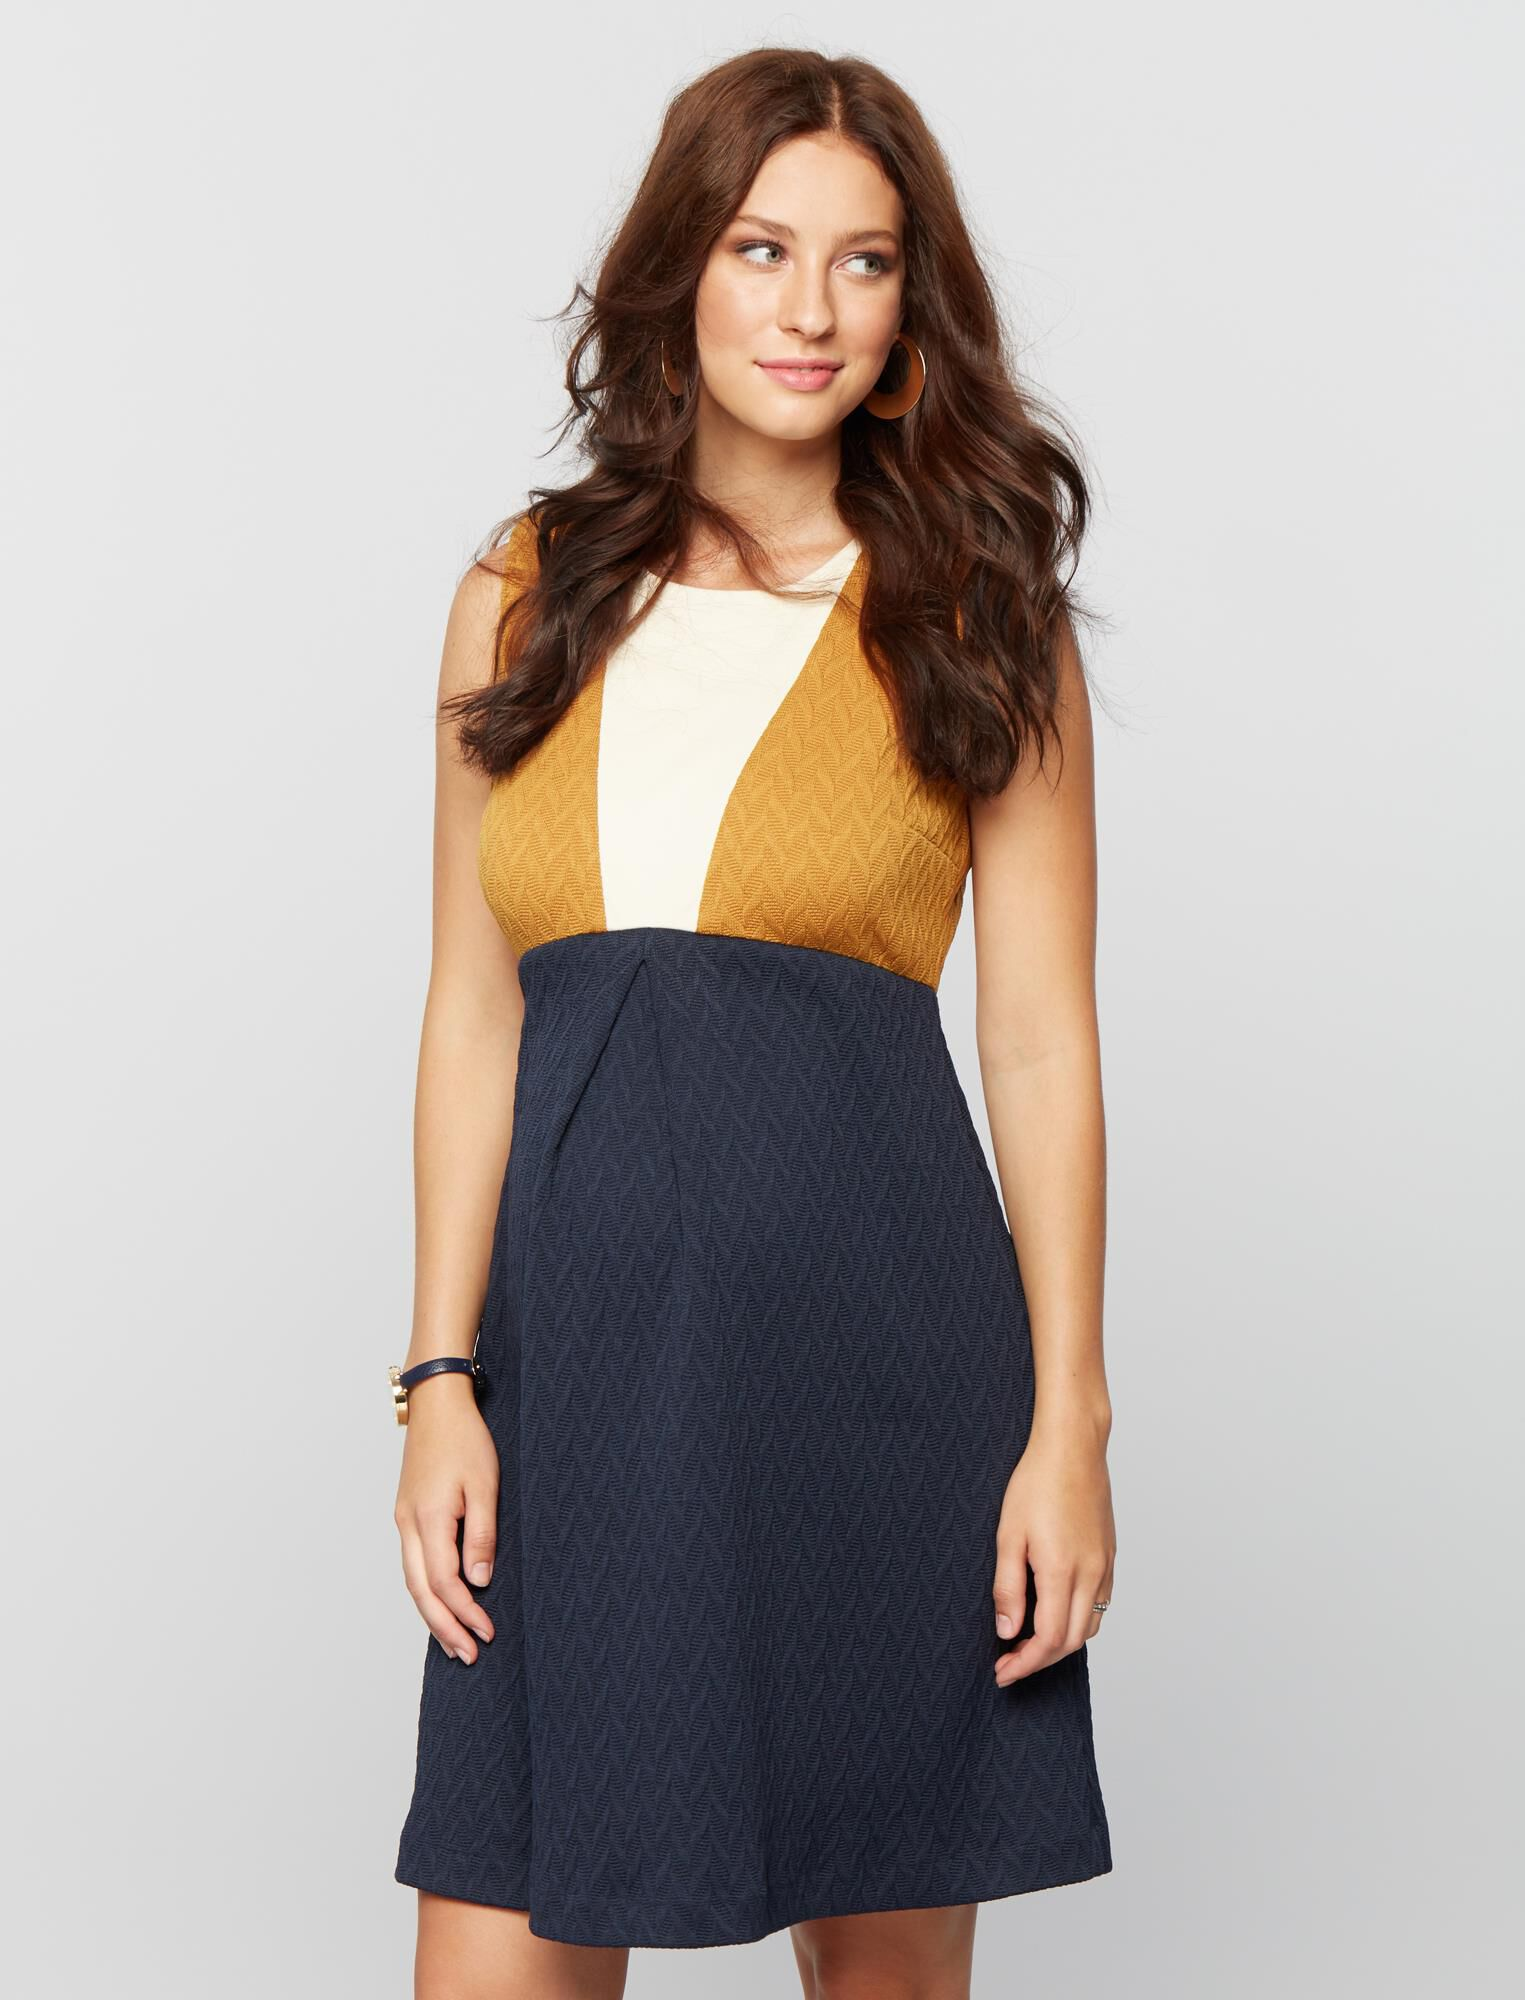 Vintage Maternity Clothes History Colorblock Fit and Flare Maternity Dress $99.99 AT vintagedancer.com